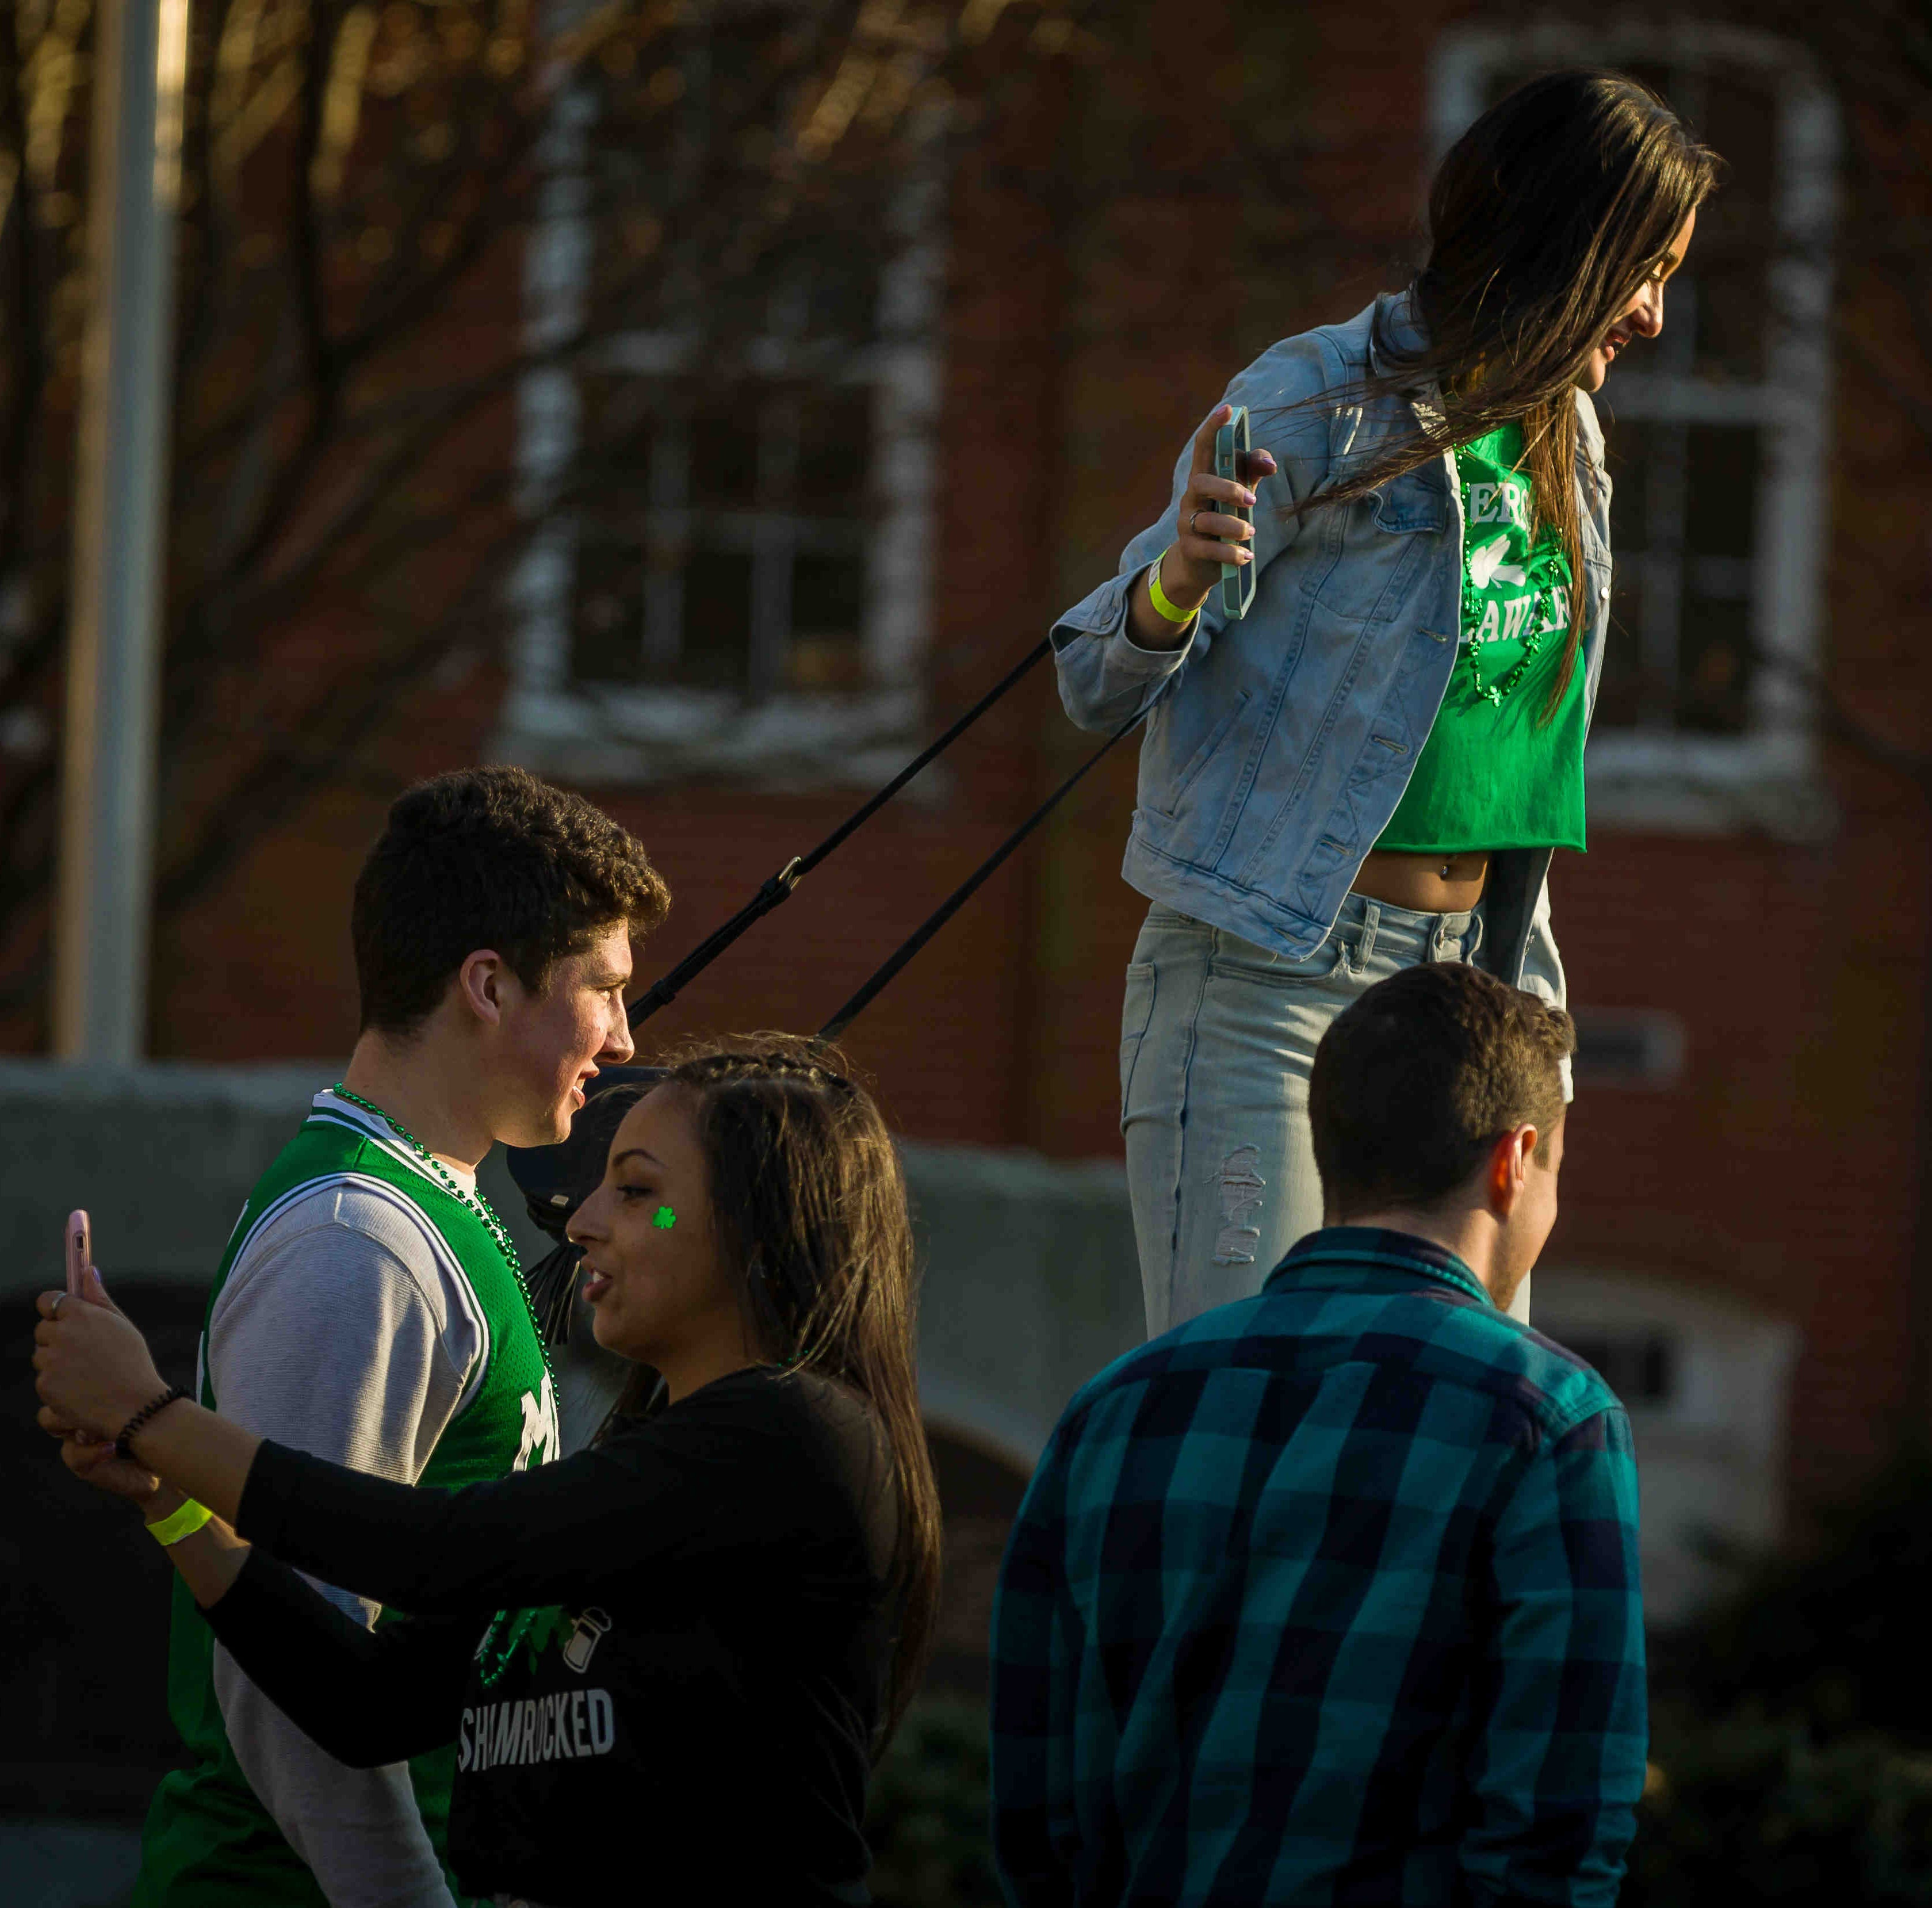 Is Newark 'super party' rule oppressing UD students or preserving the peace? Readers weigh in.